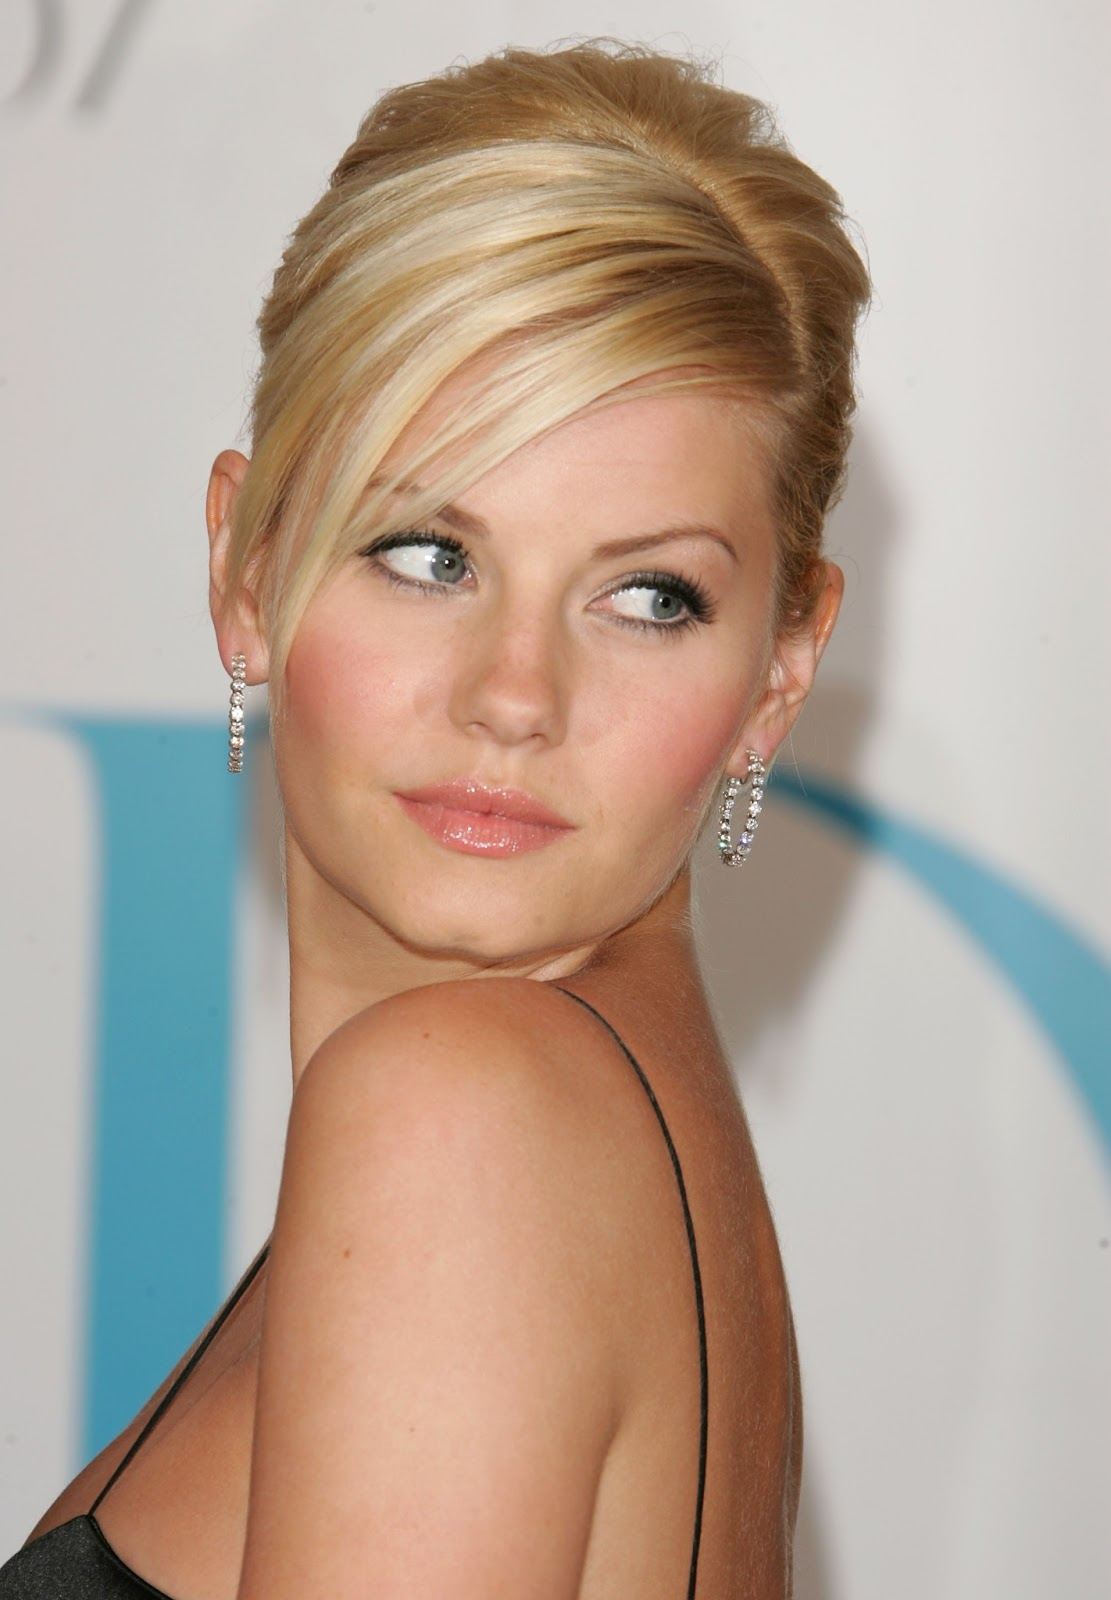 Free Girl Wallpaper For Android Elisha Cuthbert Hot Hd Wallpapers Wall Pc